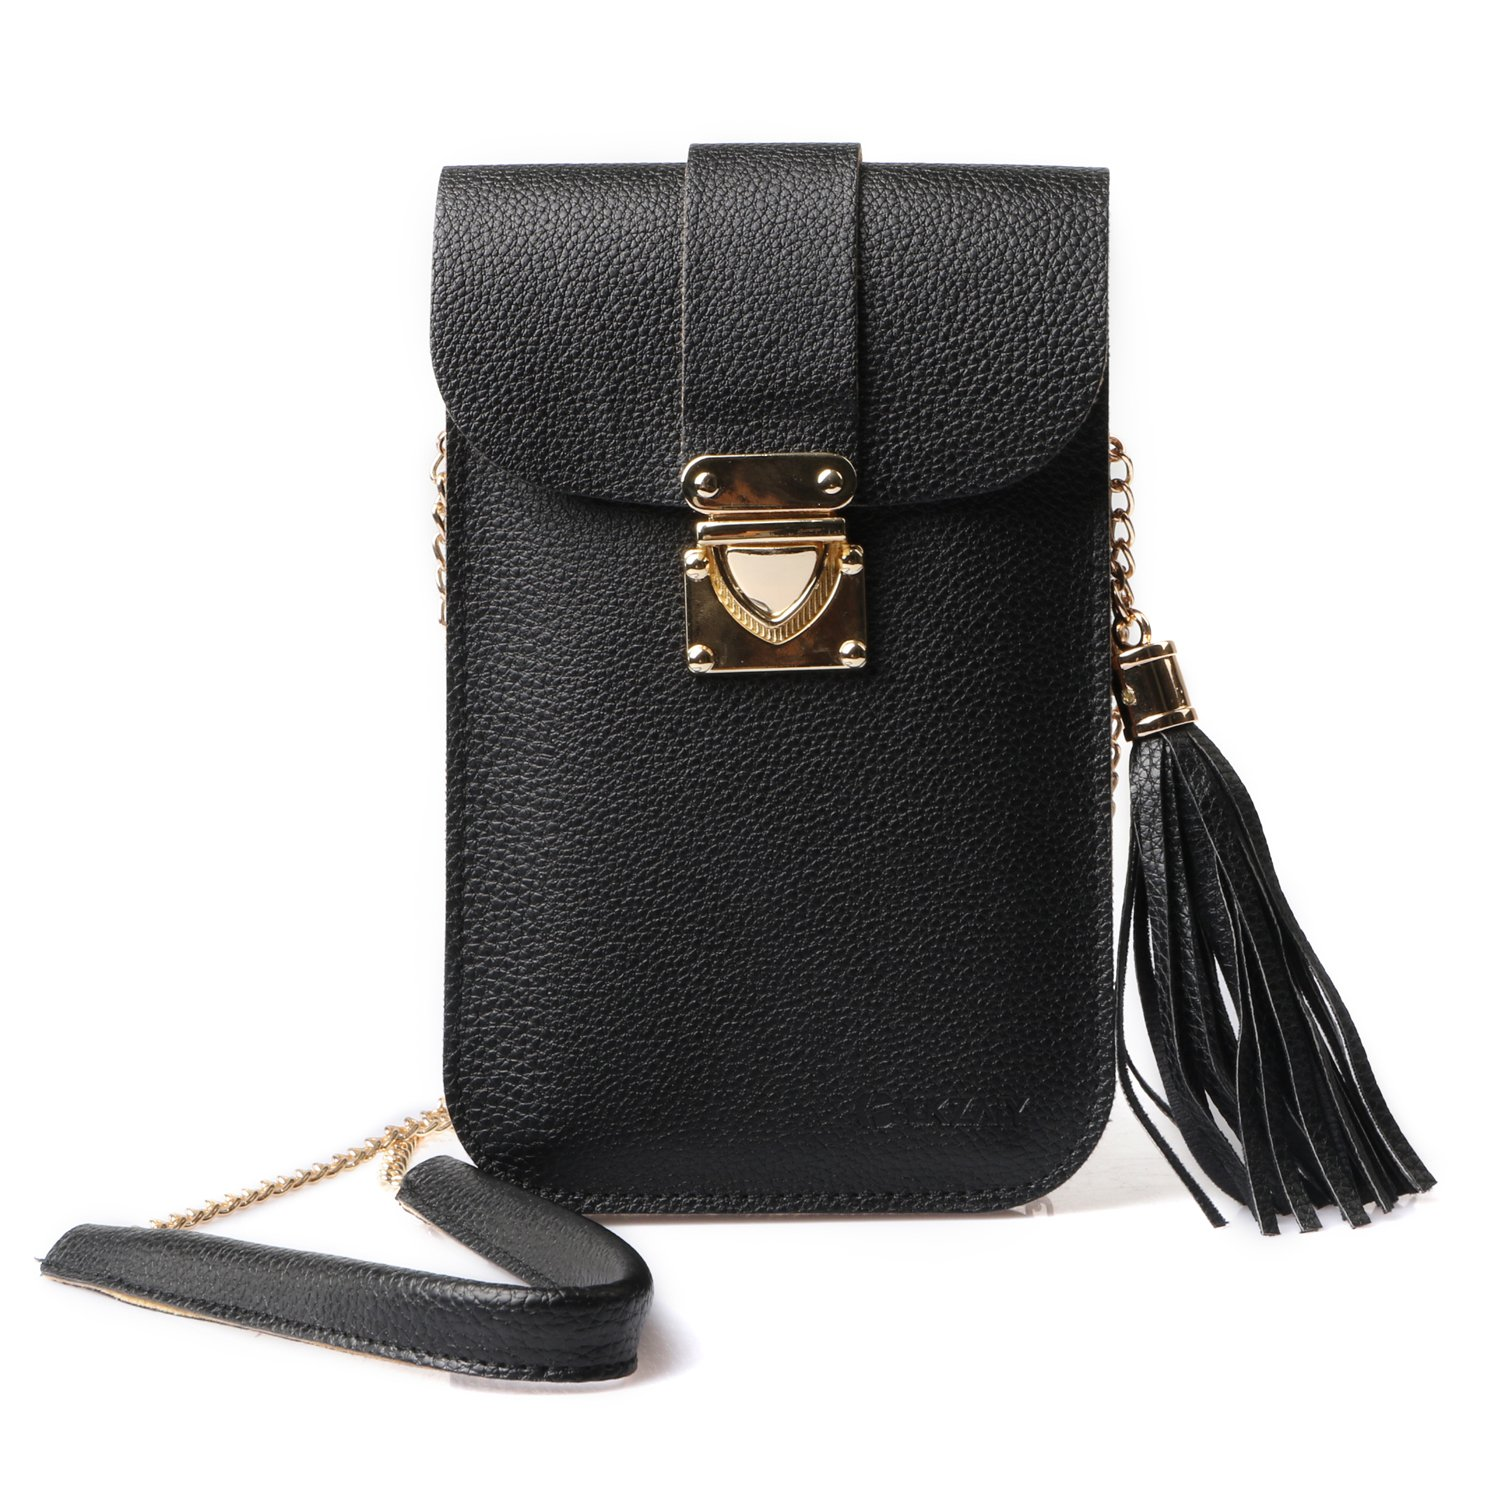 Cell Phone Bag, LKZAIY PU Leather Small Crossbody Bag with Detachable Chain Shoulder Strap Clear Purse Wallet for Women